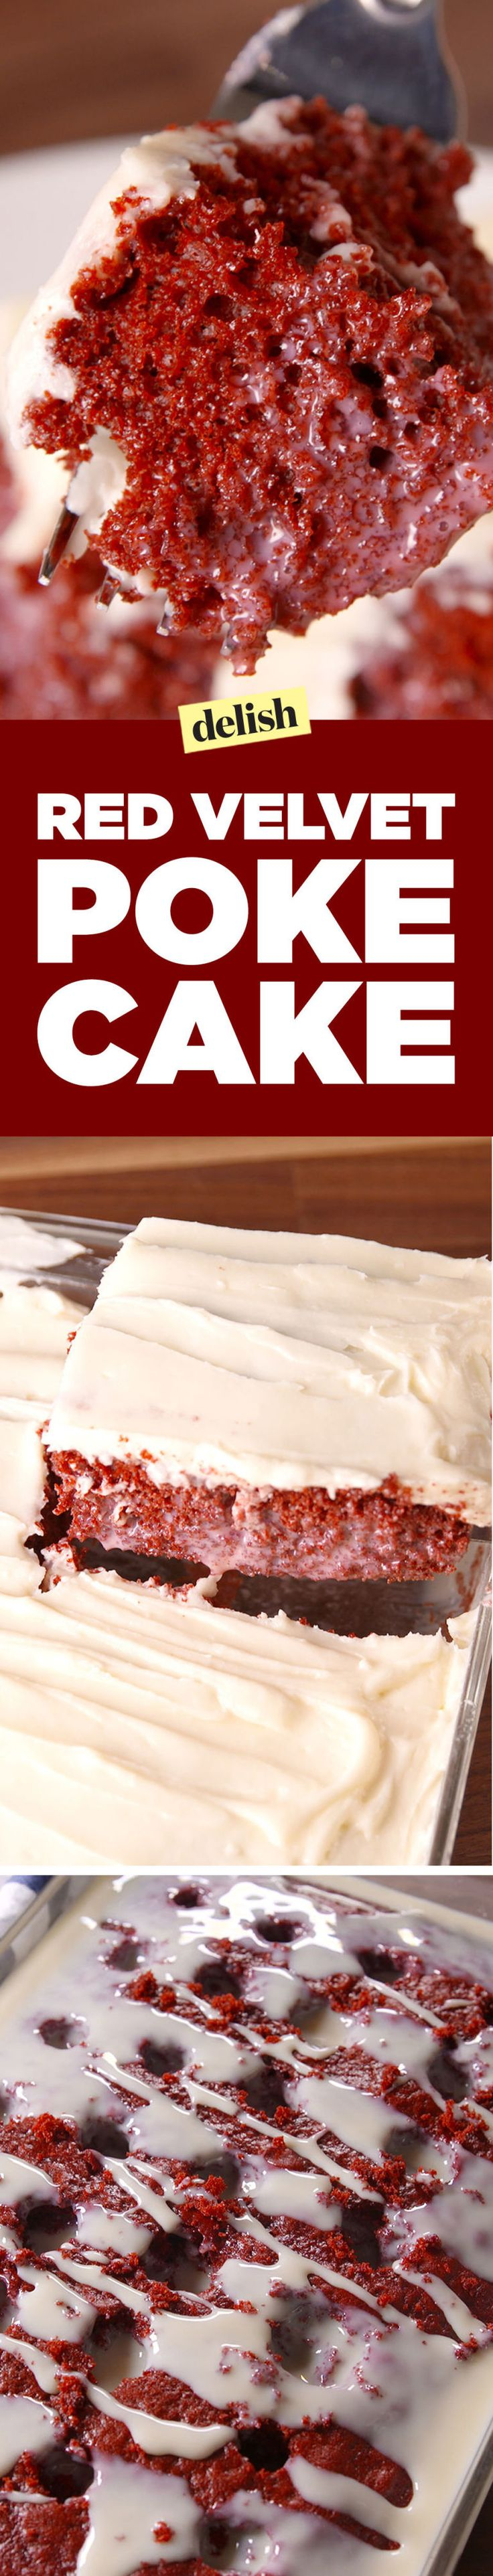 This Poke Cake Is The Ultimate In Red Velvet Desserts  - Delish.com